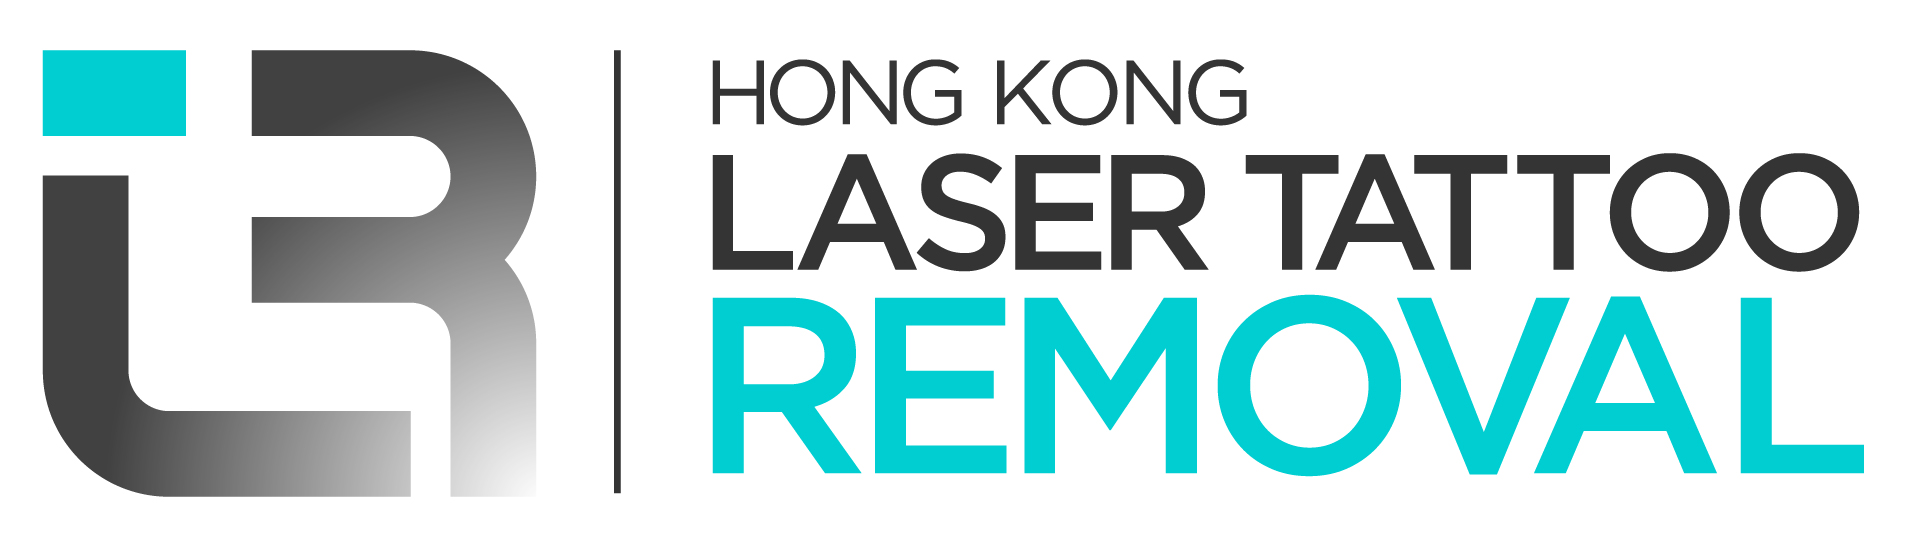 Hong Kong Laser Tattoo Removal Clinic